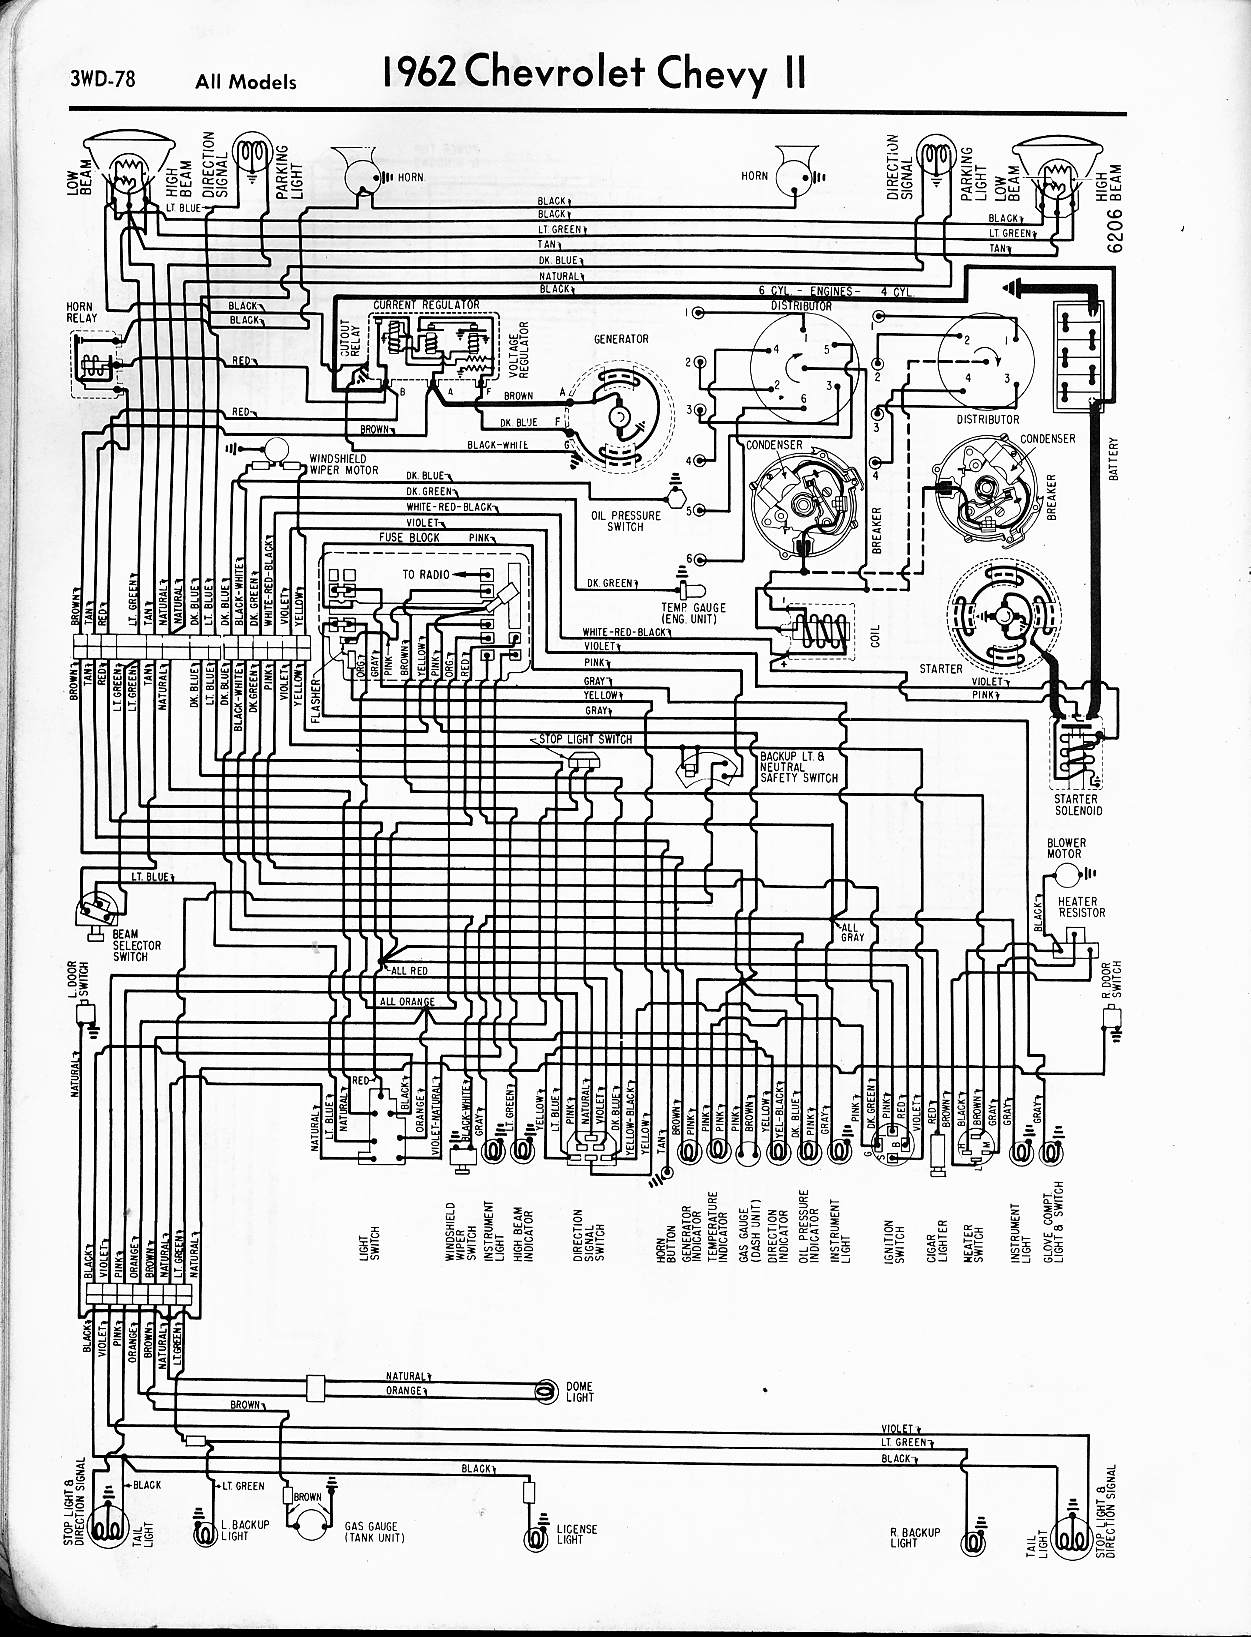 MWireChev62_3WD 078 1963 c10 pickup wiring diagram pdf chevy wiring diagrams \u2022 free 67 Chevy 2 Nova at creativeand.co